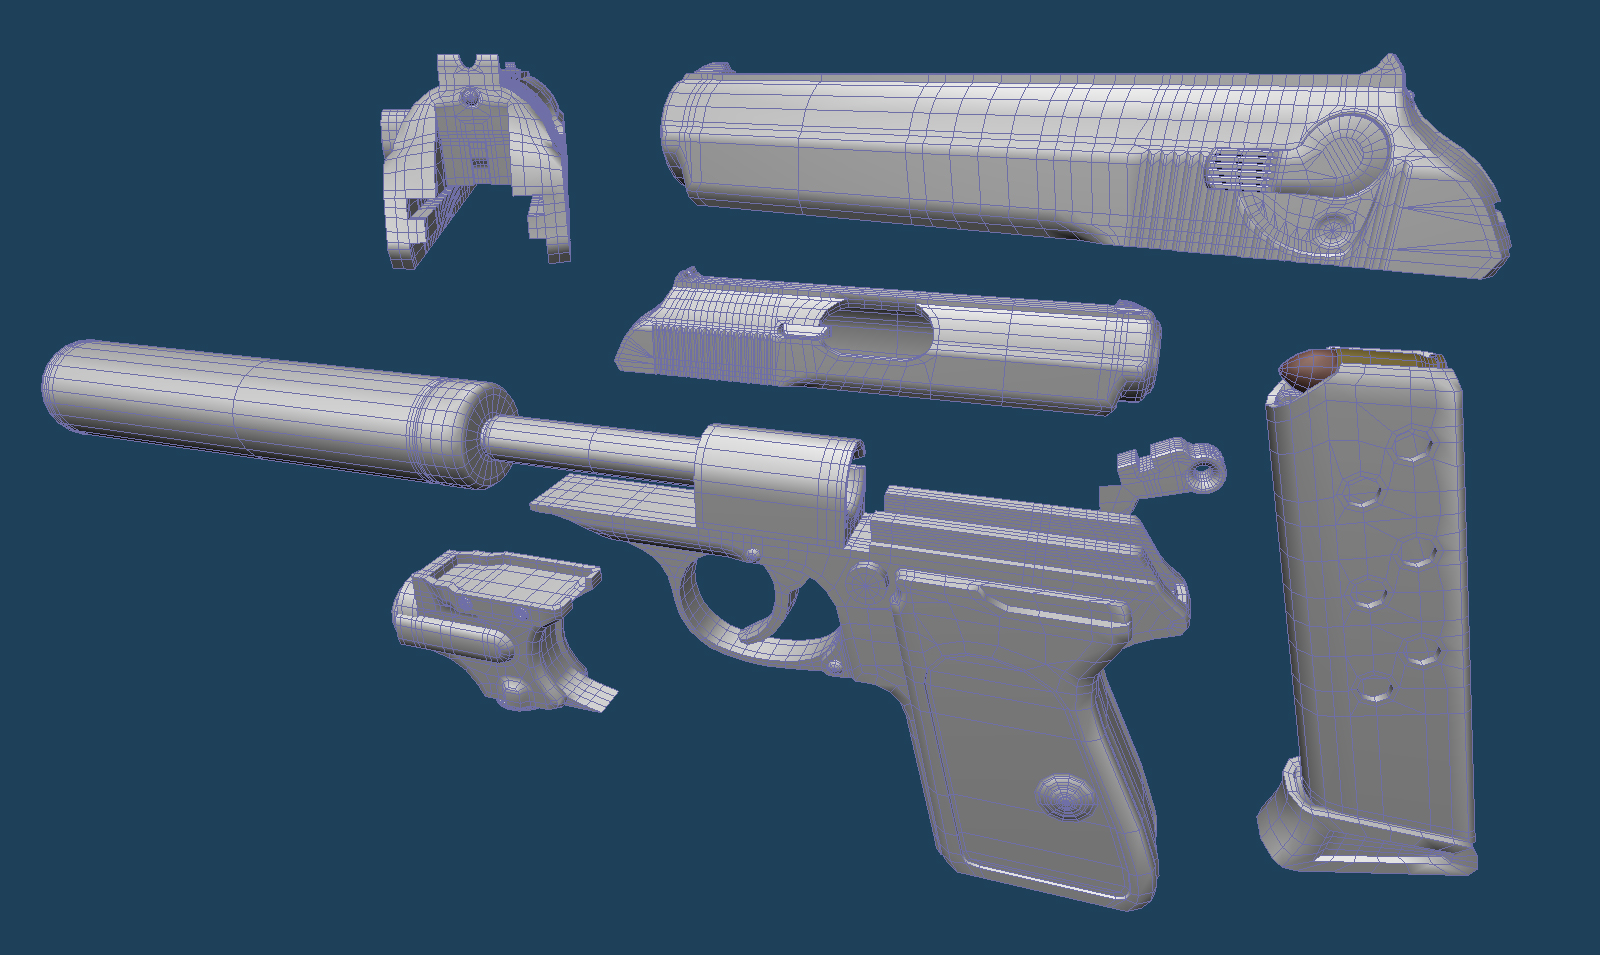 Walther PPK High Polygon Model Wireframe image